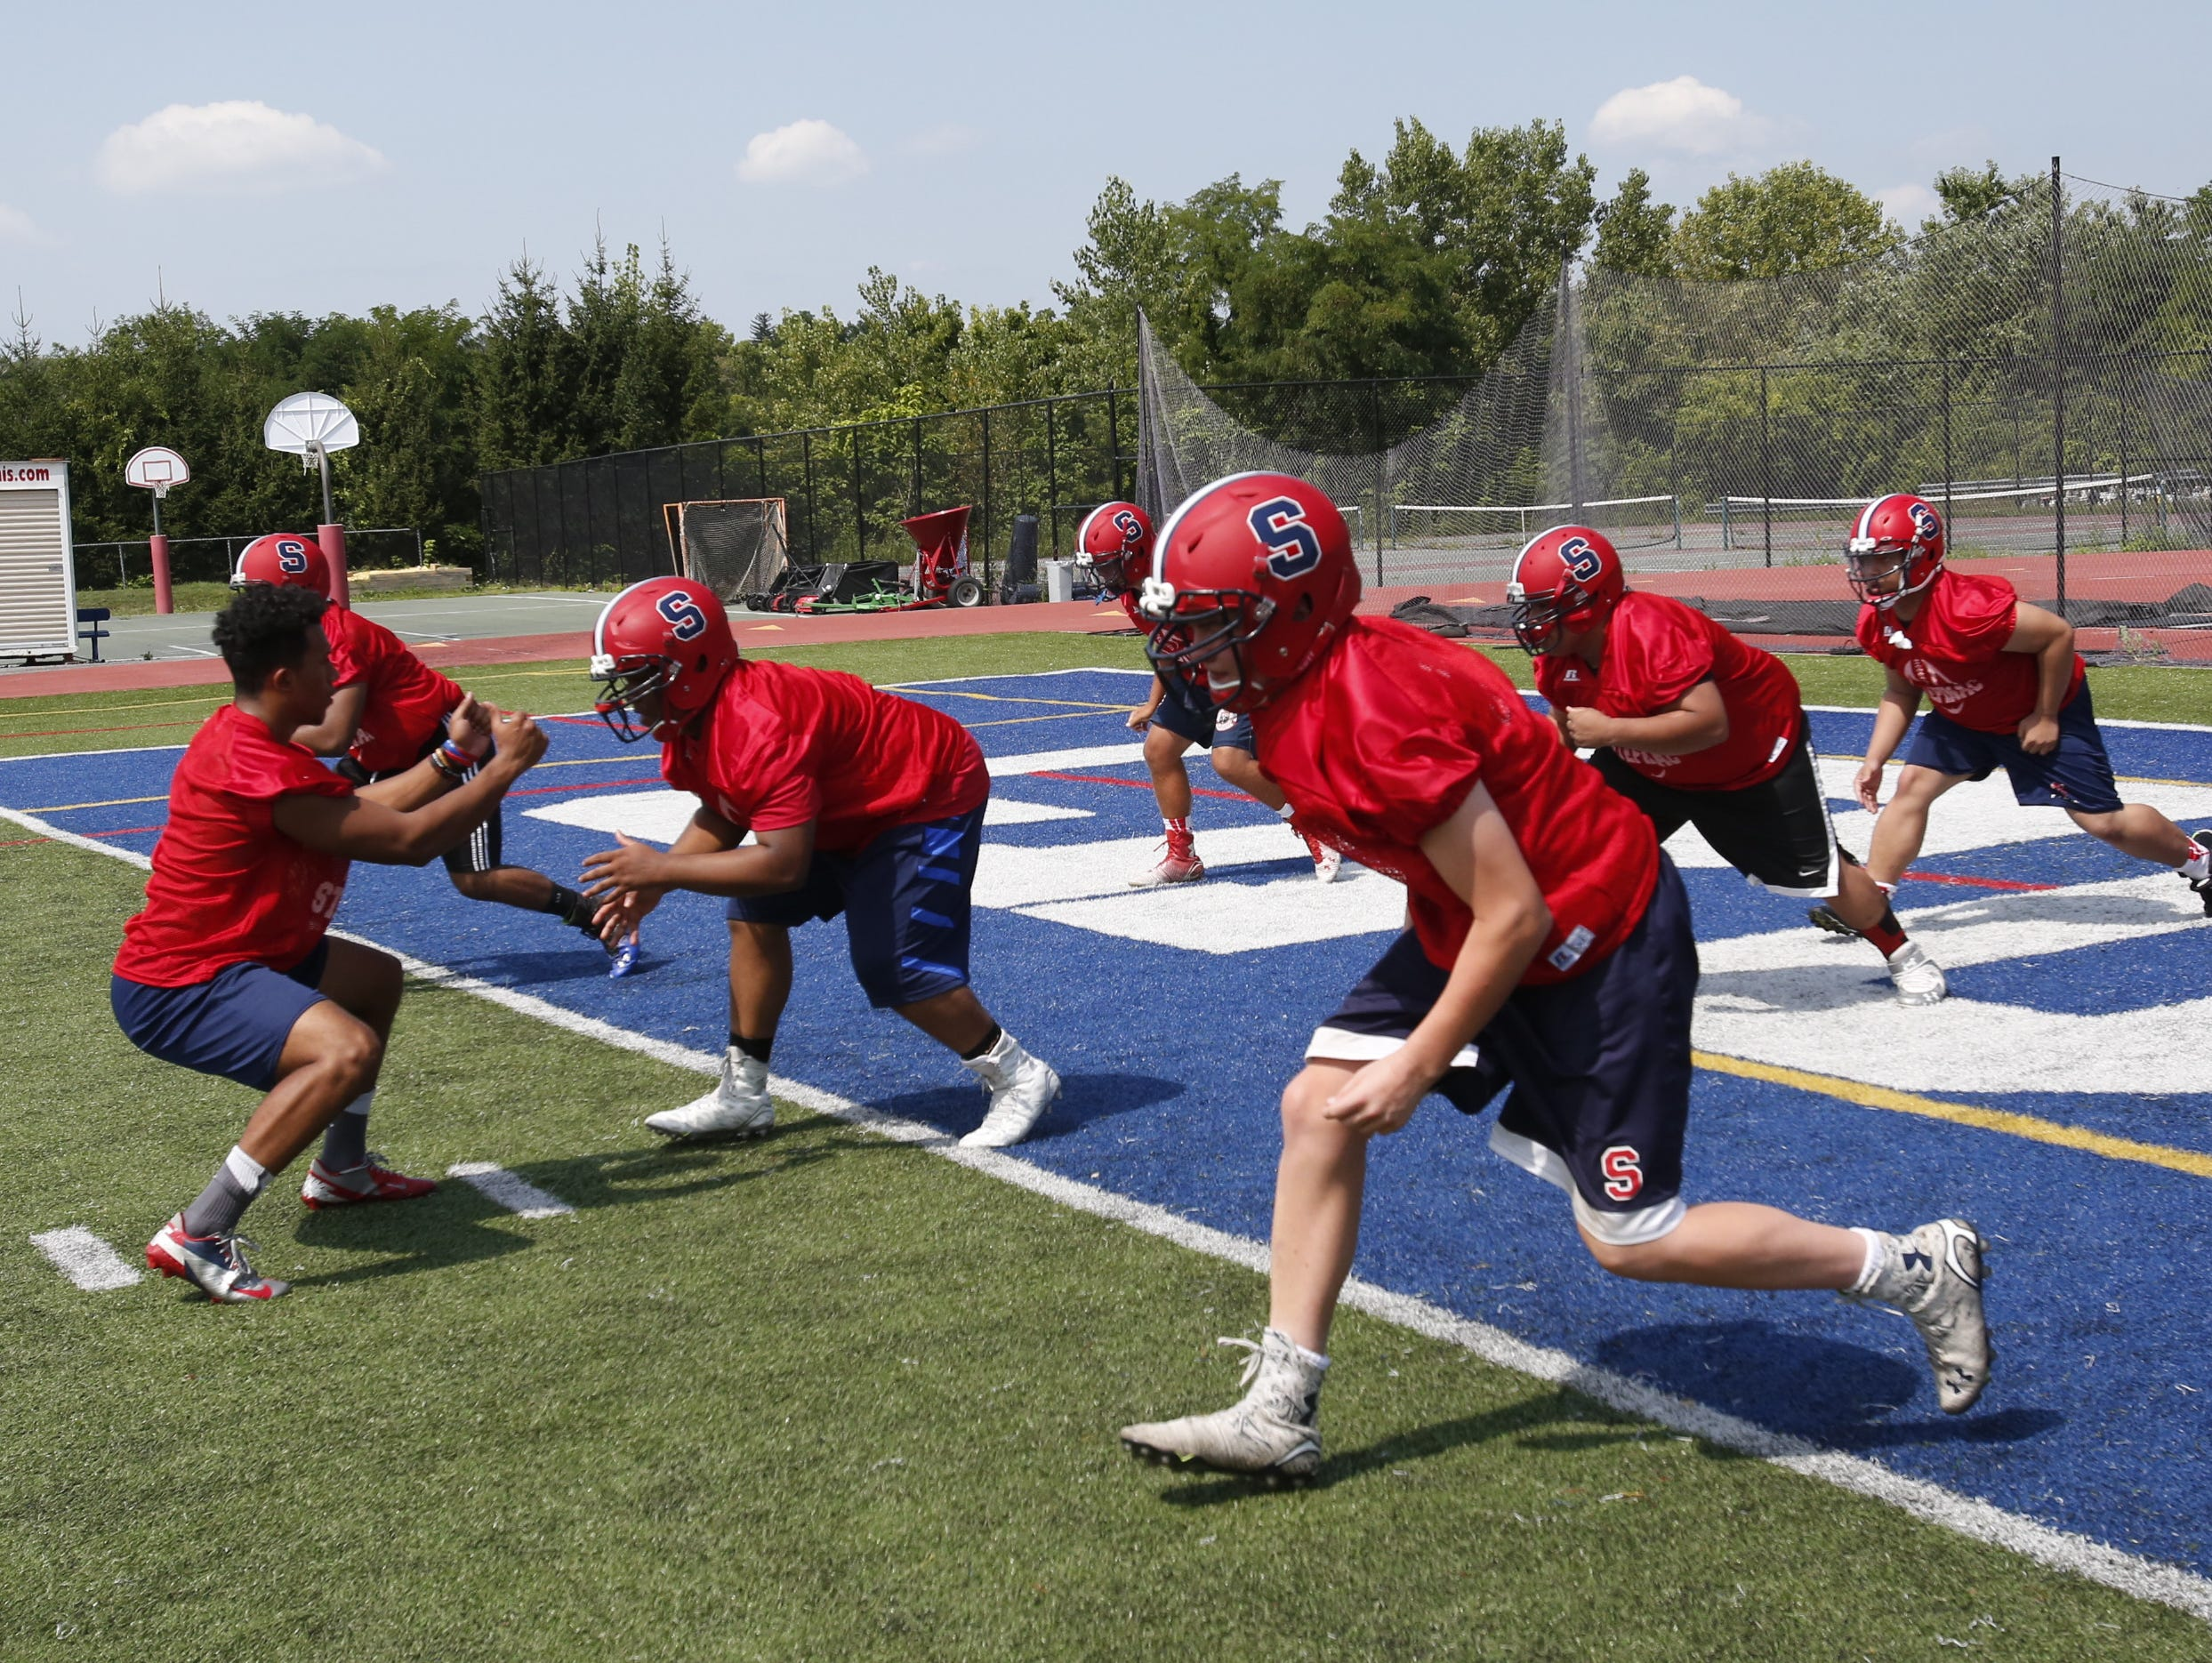 Archbishop Stepinac High School's football team go through drills during practice in White Plains on Aug. 24, 2015.